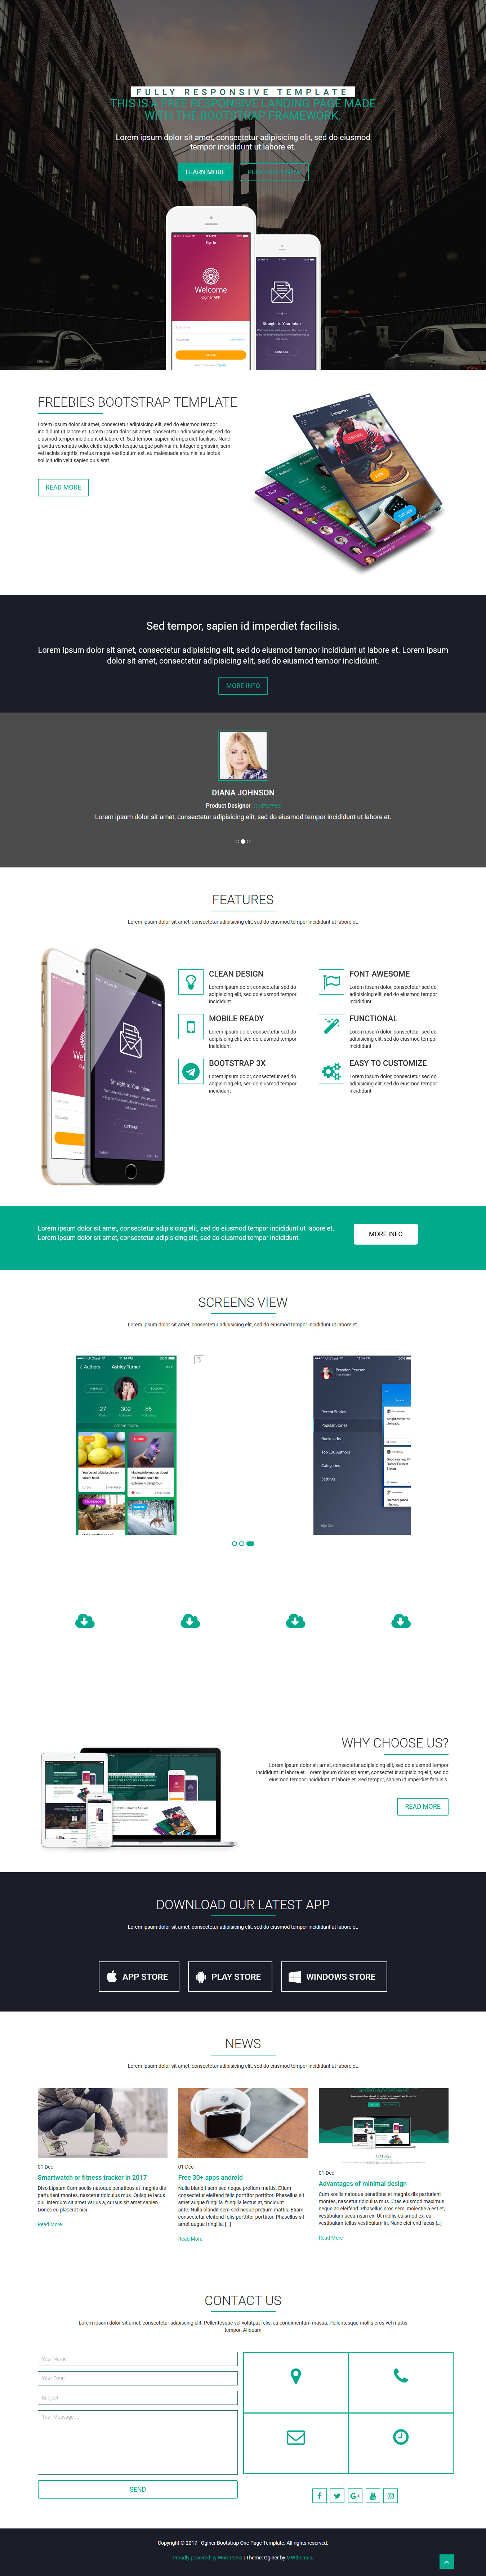 Oginer - Best Free Mobile App WordPress Theme